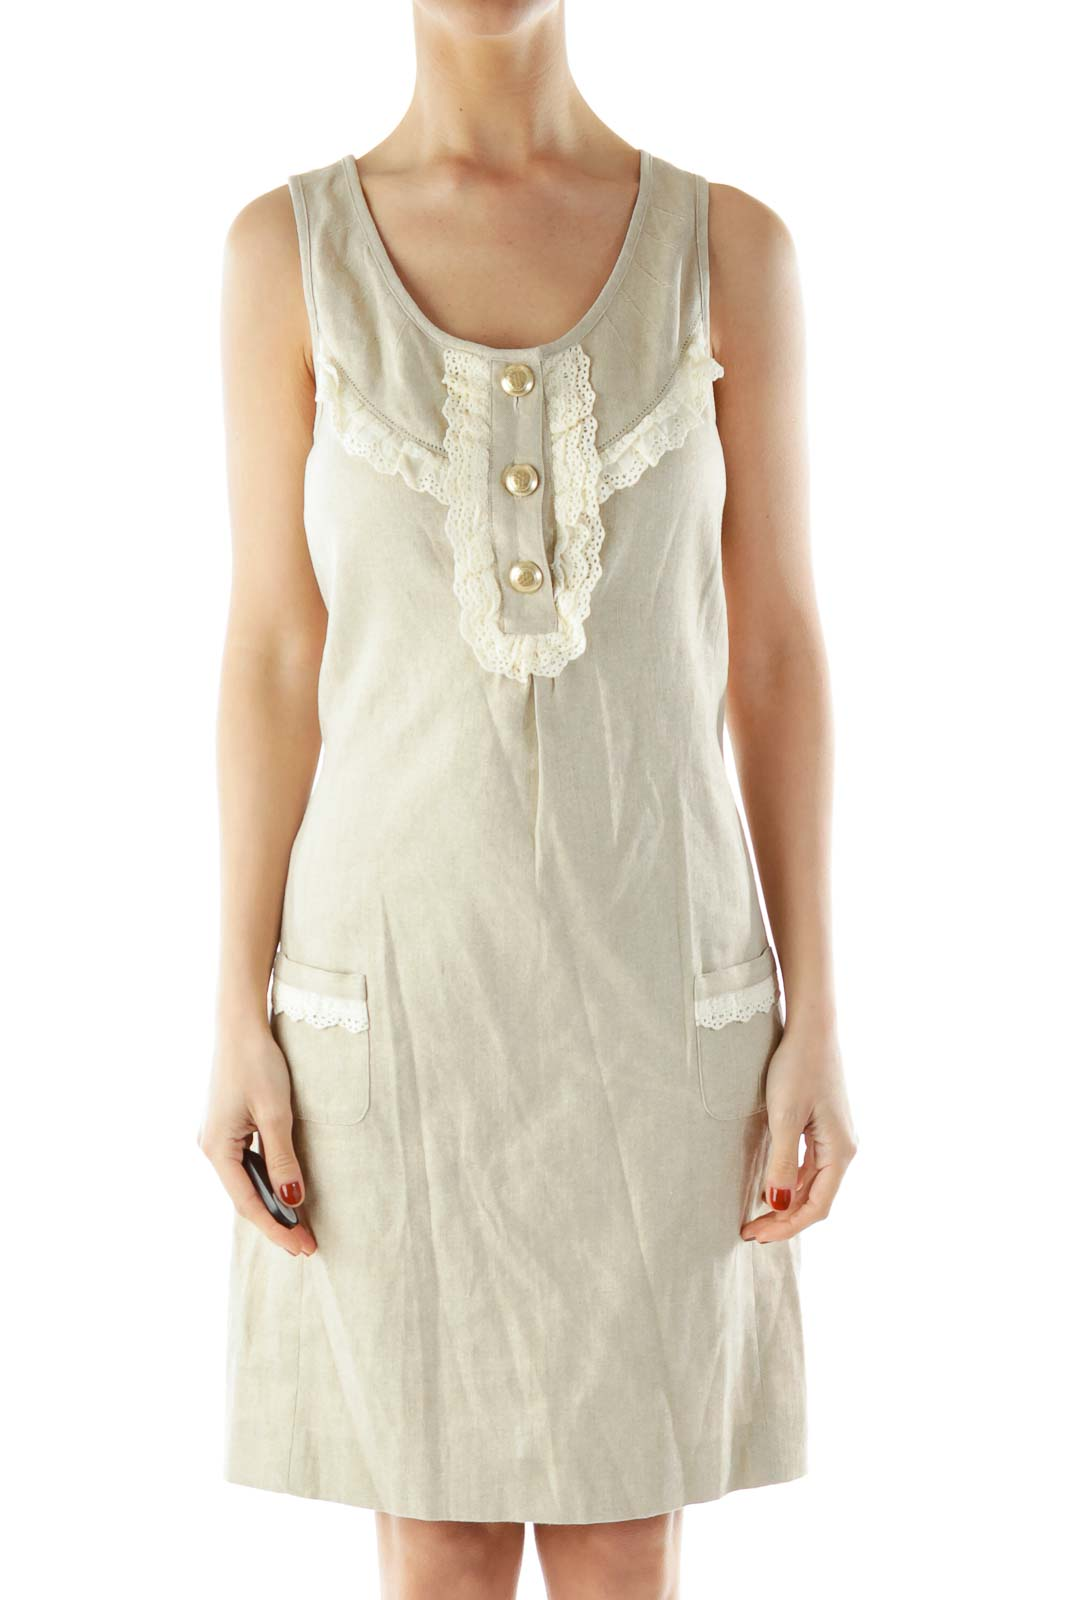 Beige Buttoned Pocketed Sleeveless Day Dress Front